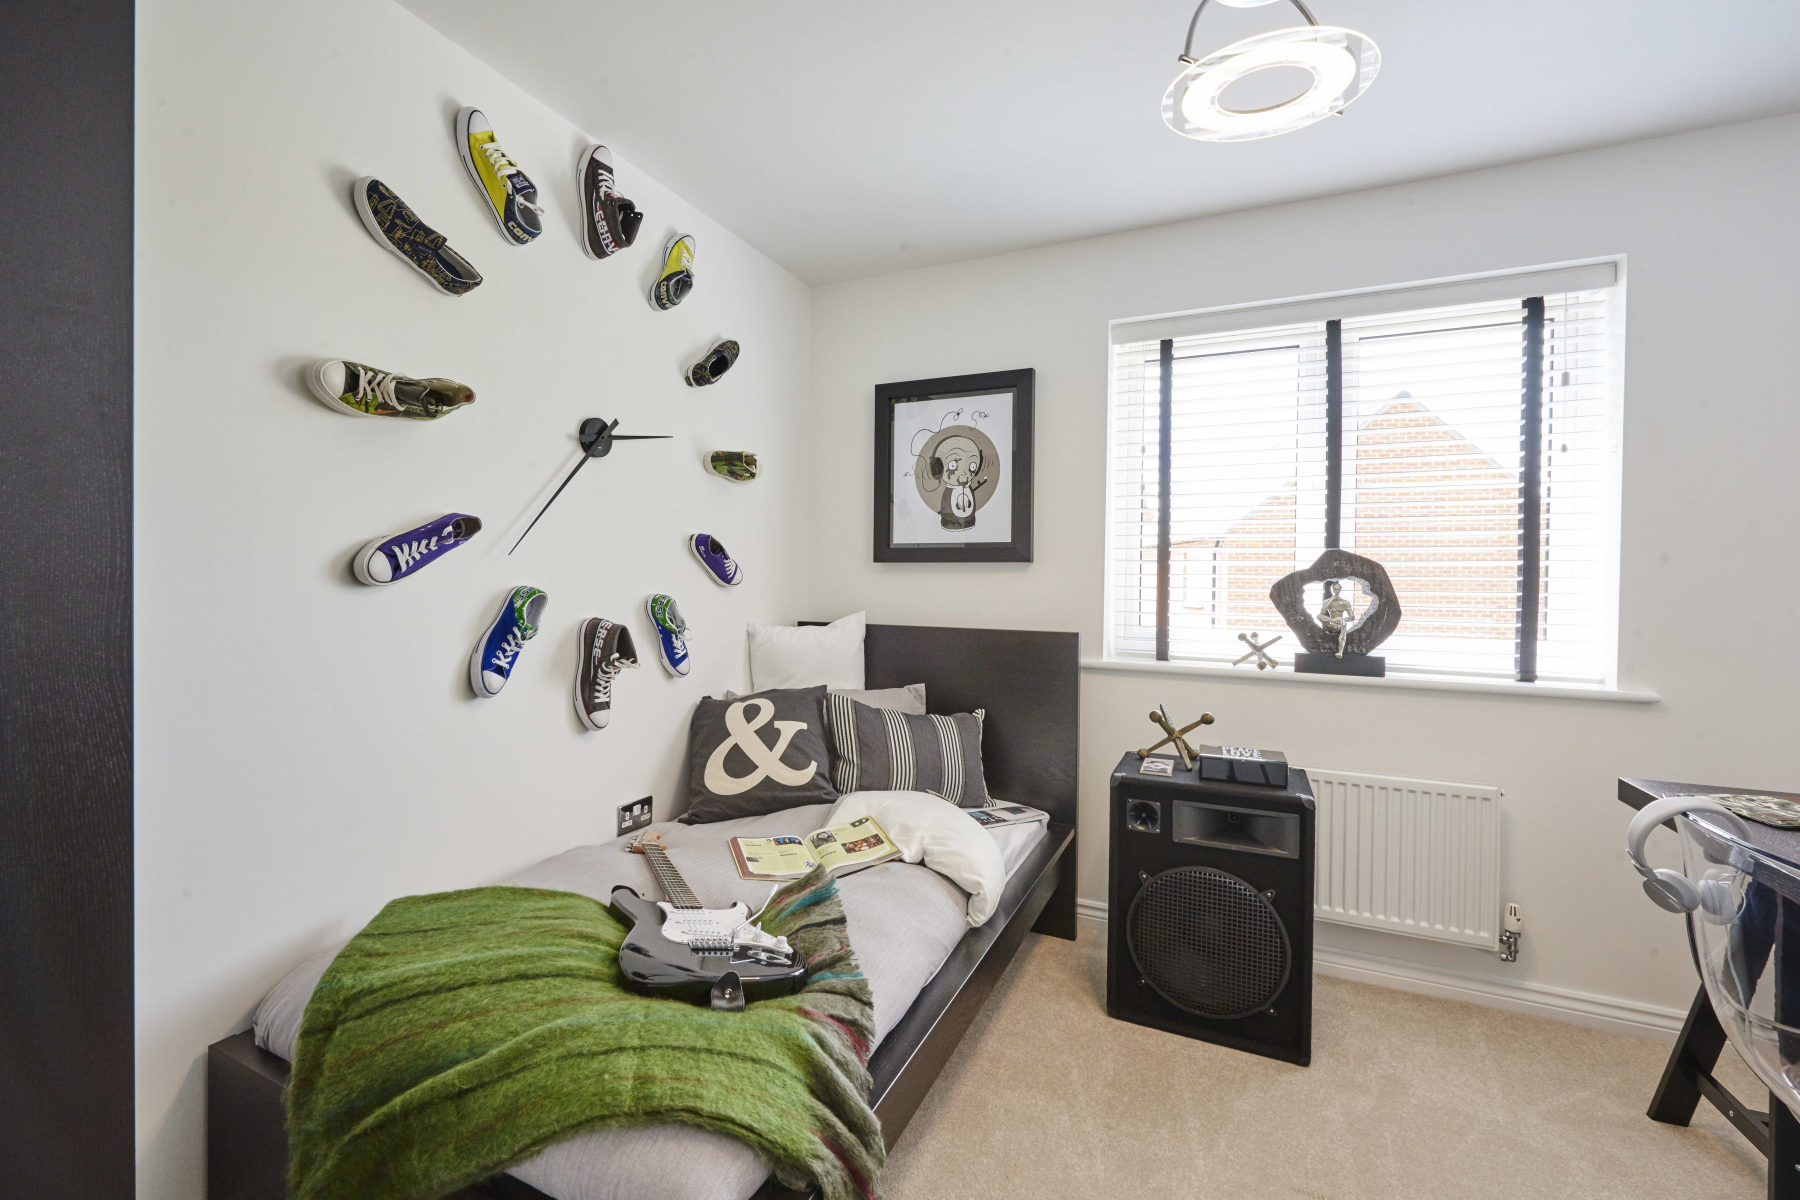 Shelford - Bourne View - Bedroom 3